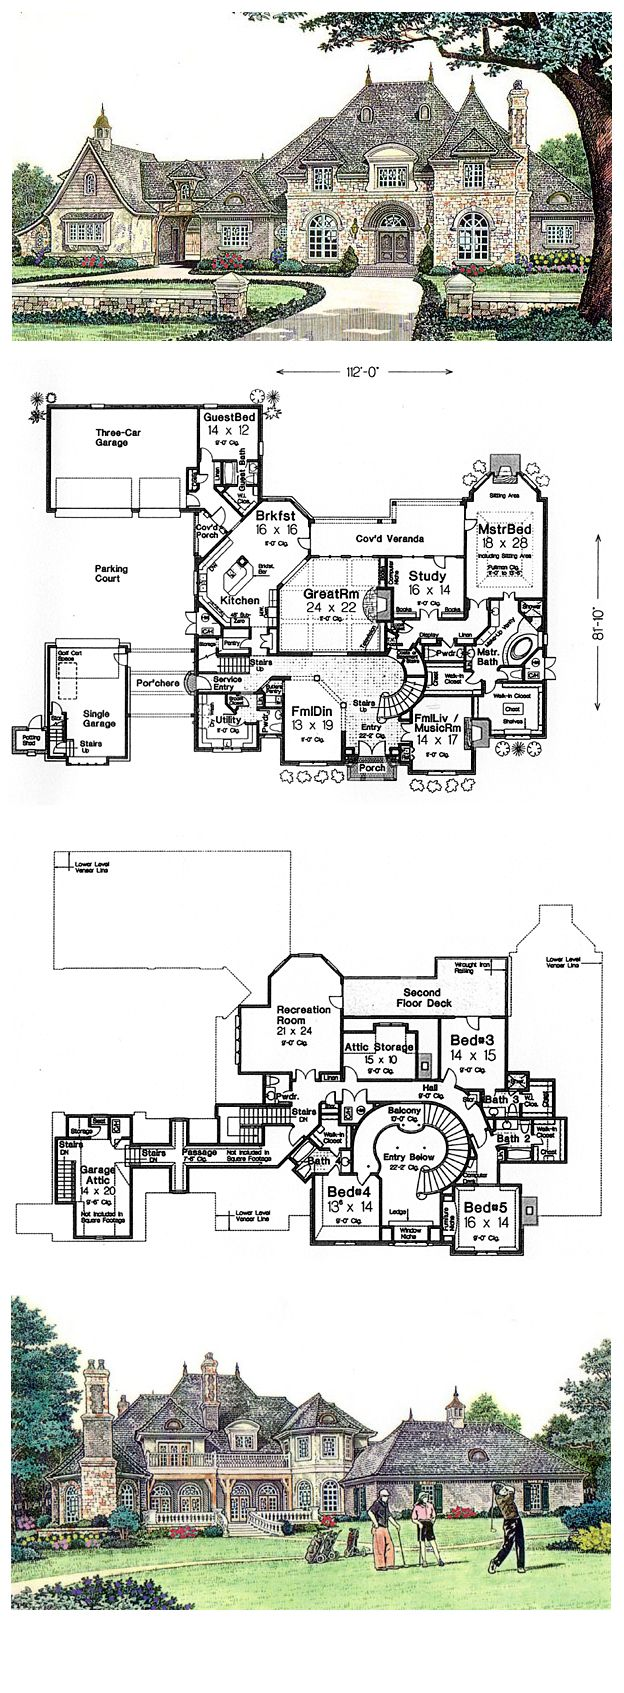 COOL House Plan ID: chp-39871 | Total living area: 6274 sq ft, 5 bedrooms & 6 bathrooms. Multiple stairs. Very spacious.